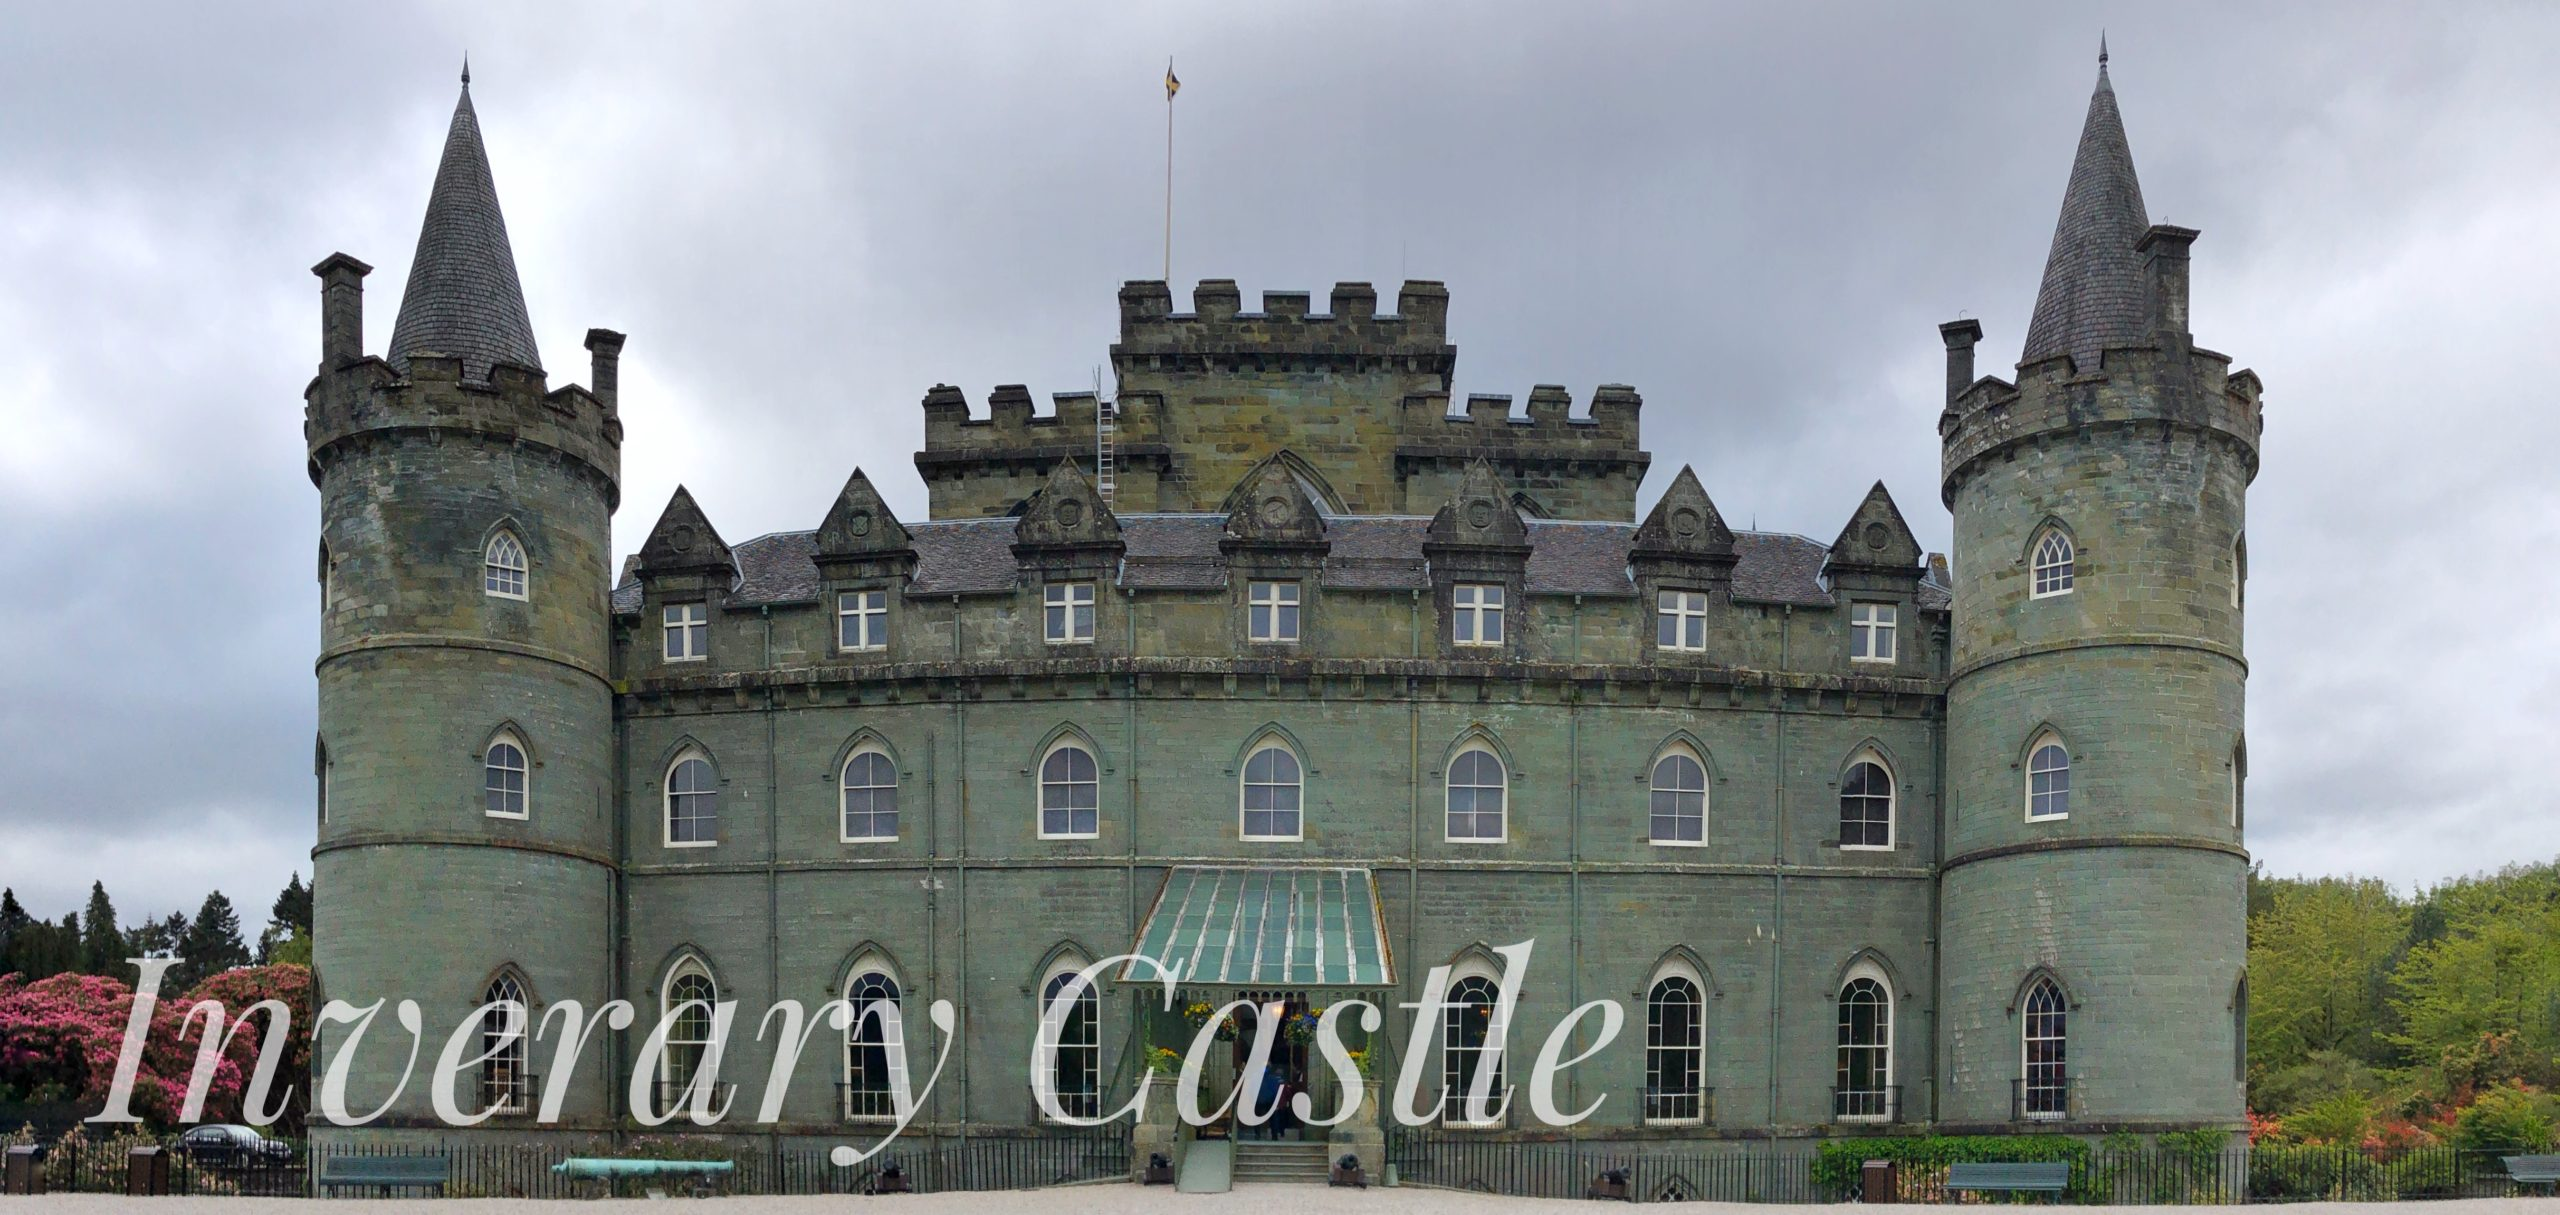 Inverary Castle located in west Scotland on the shores of Loch Fyne